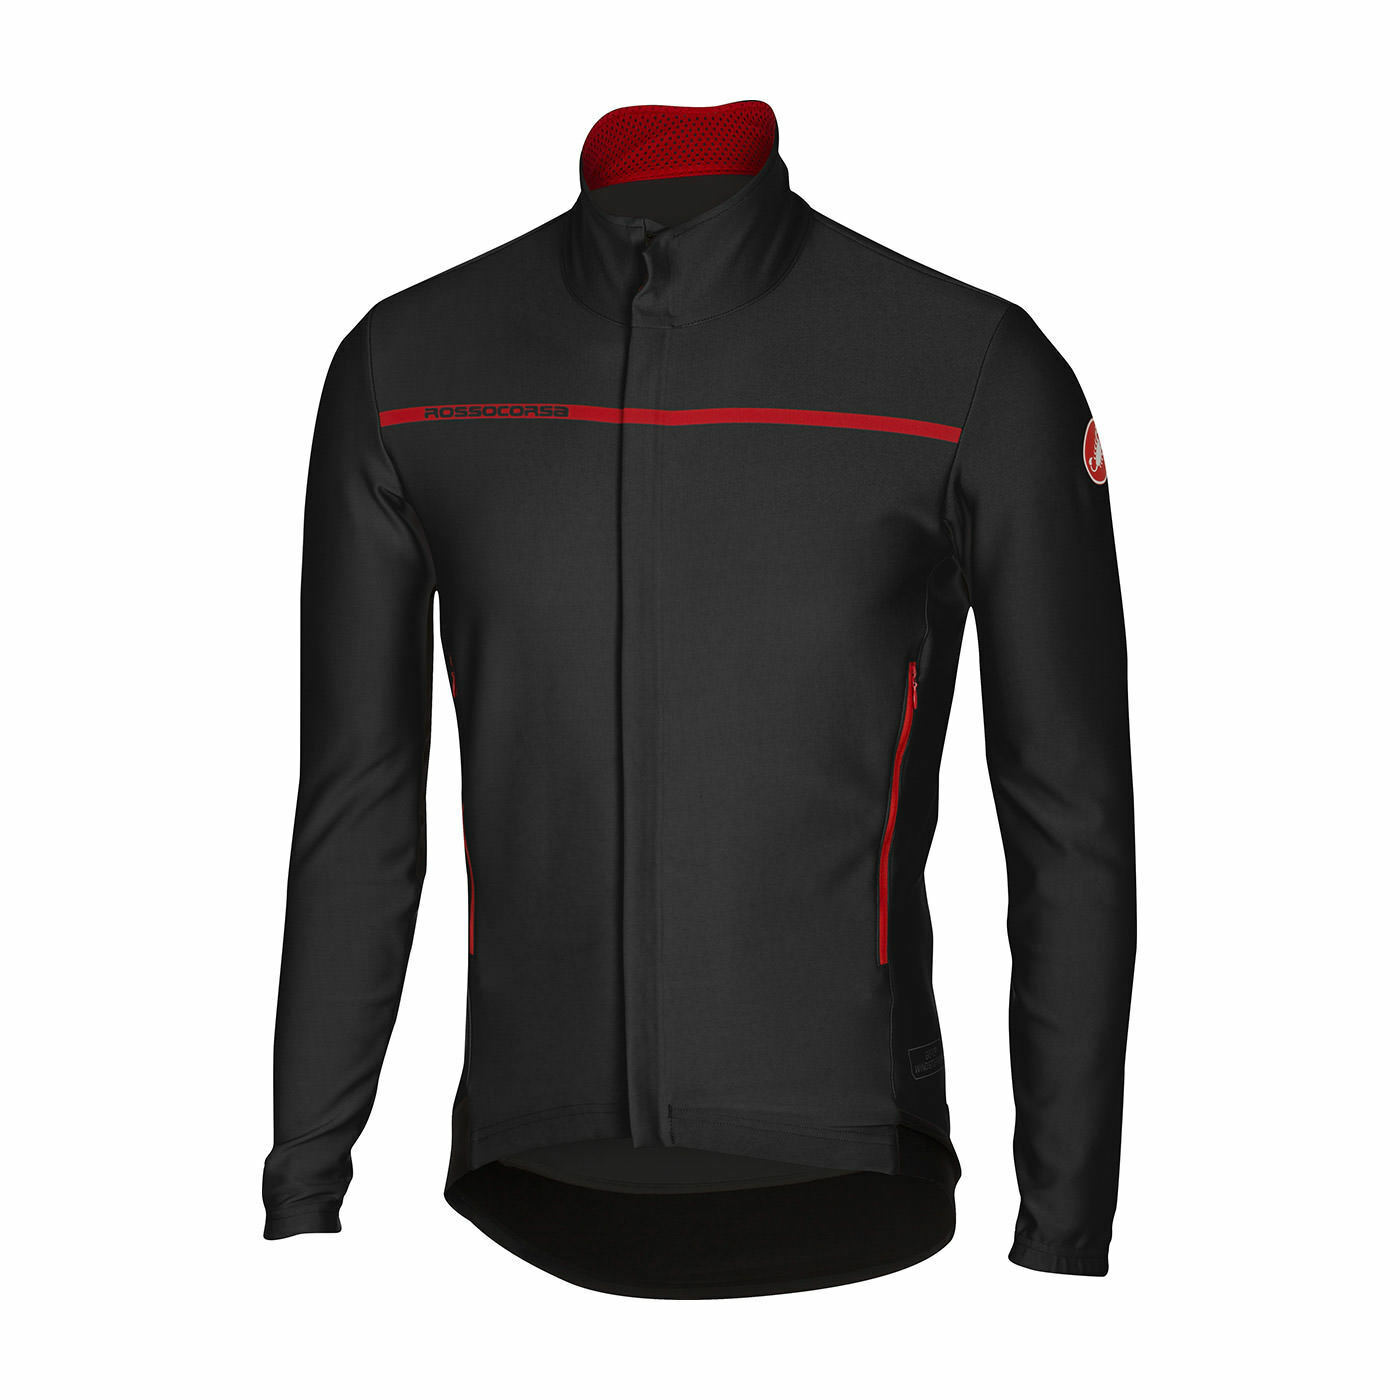 CASTELLI  GIACCA GIACCA GIACCA  PERFETTO LONG SLEEVE BLACK 82b1a2